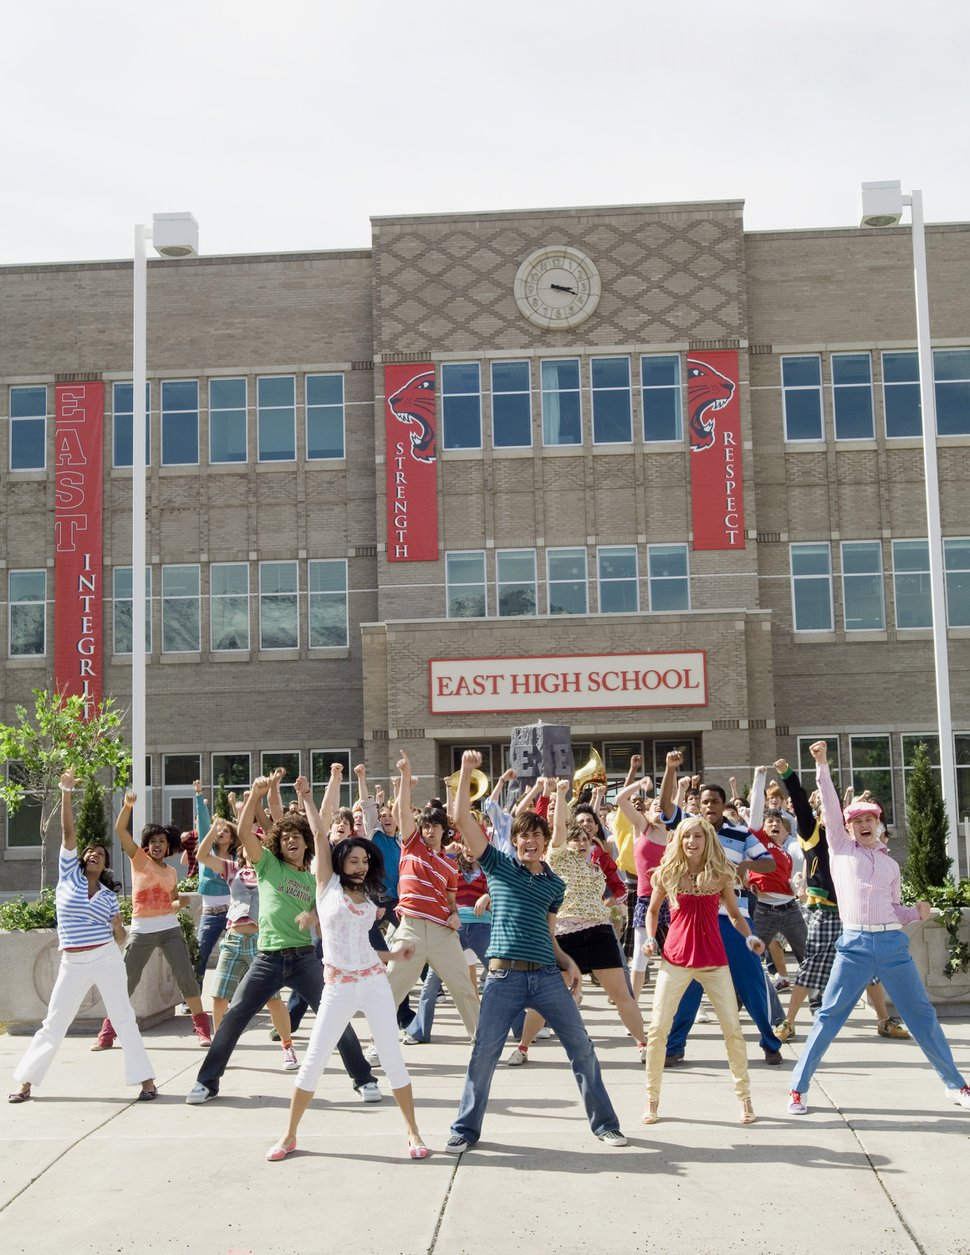 (Photo courtesy Fred Hayes/Disney Channel) Monique Coleman, Corbin Bleu, Vanessa Hudgens, Zac Efron, Ashley Tisdale and Lucas Grabeel returned to East High for